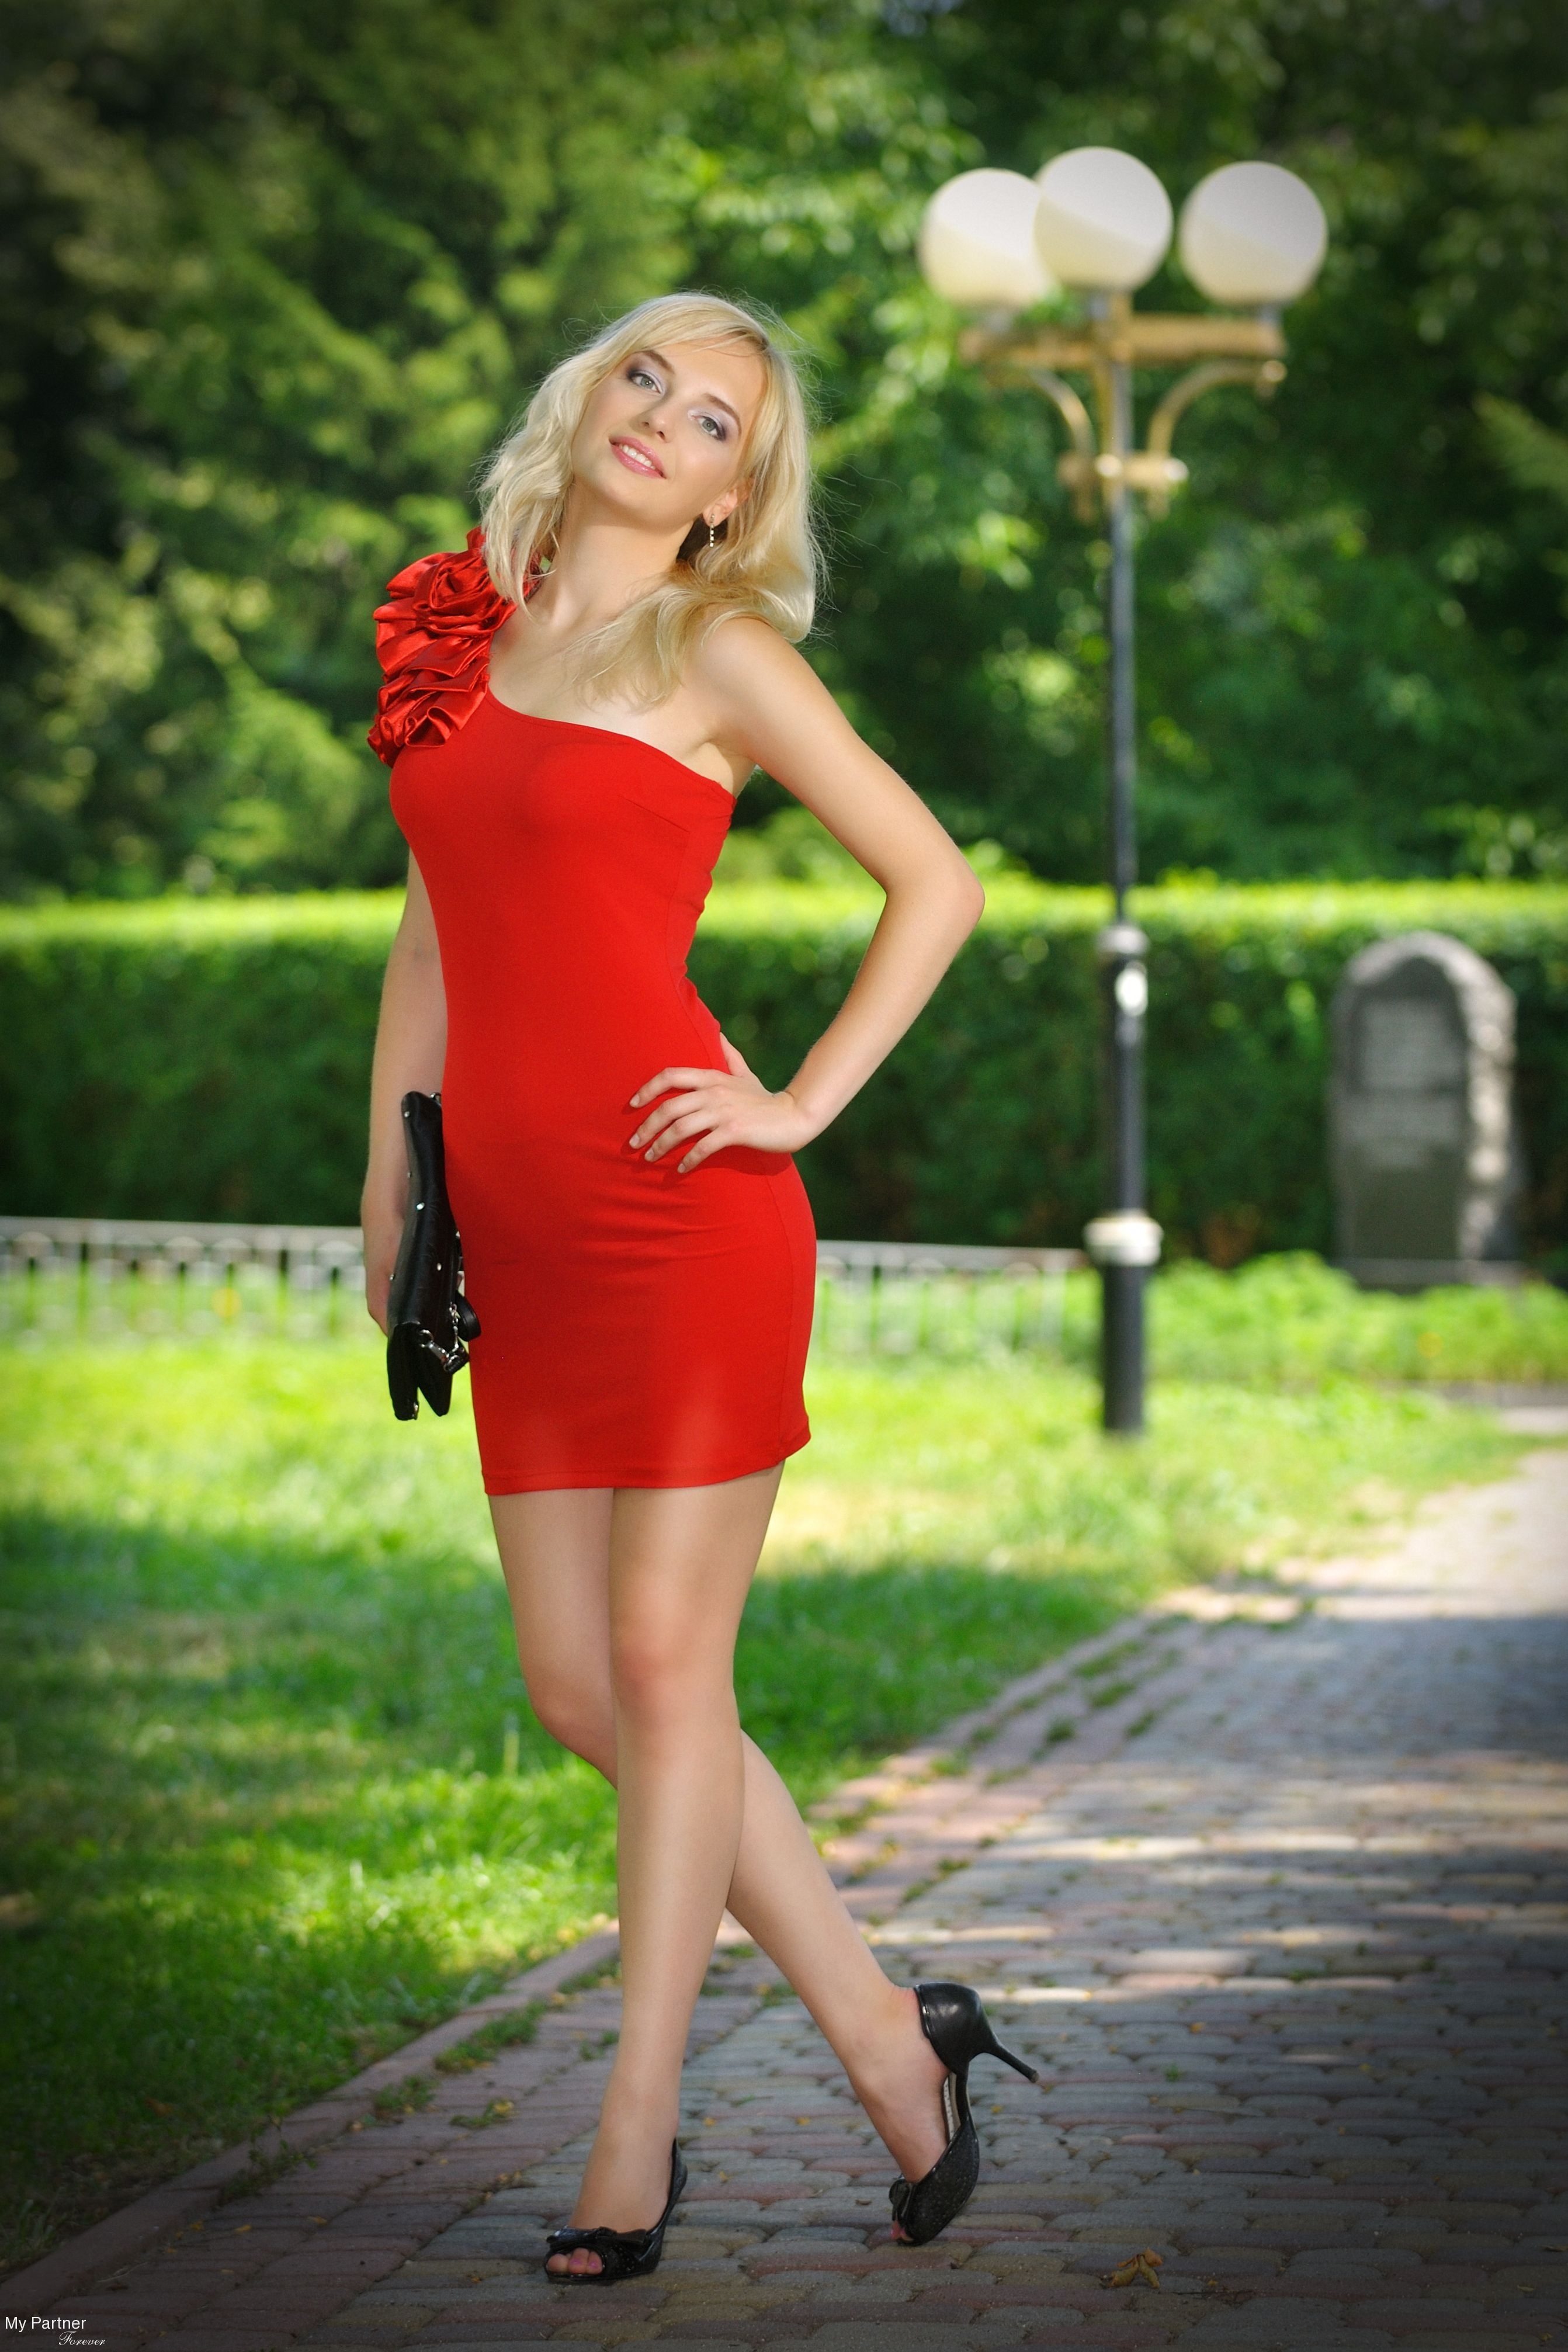 Ukraine Dating Ukrainian Single 11